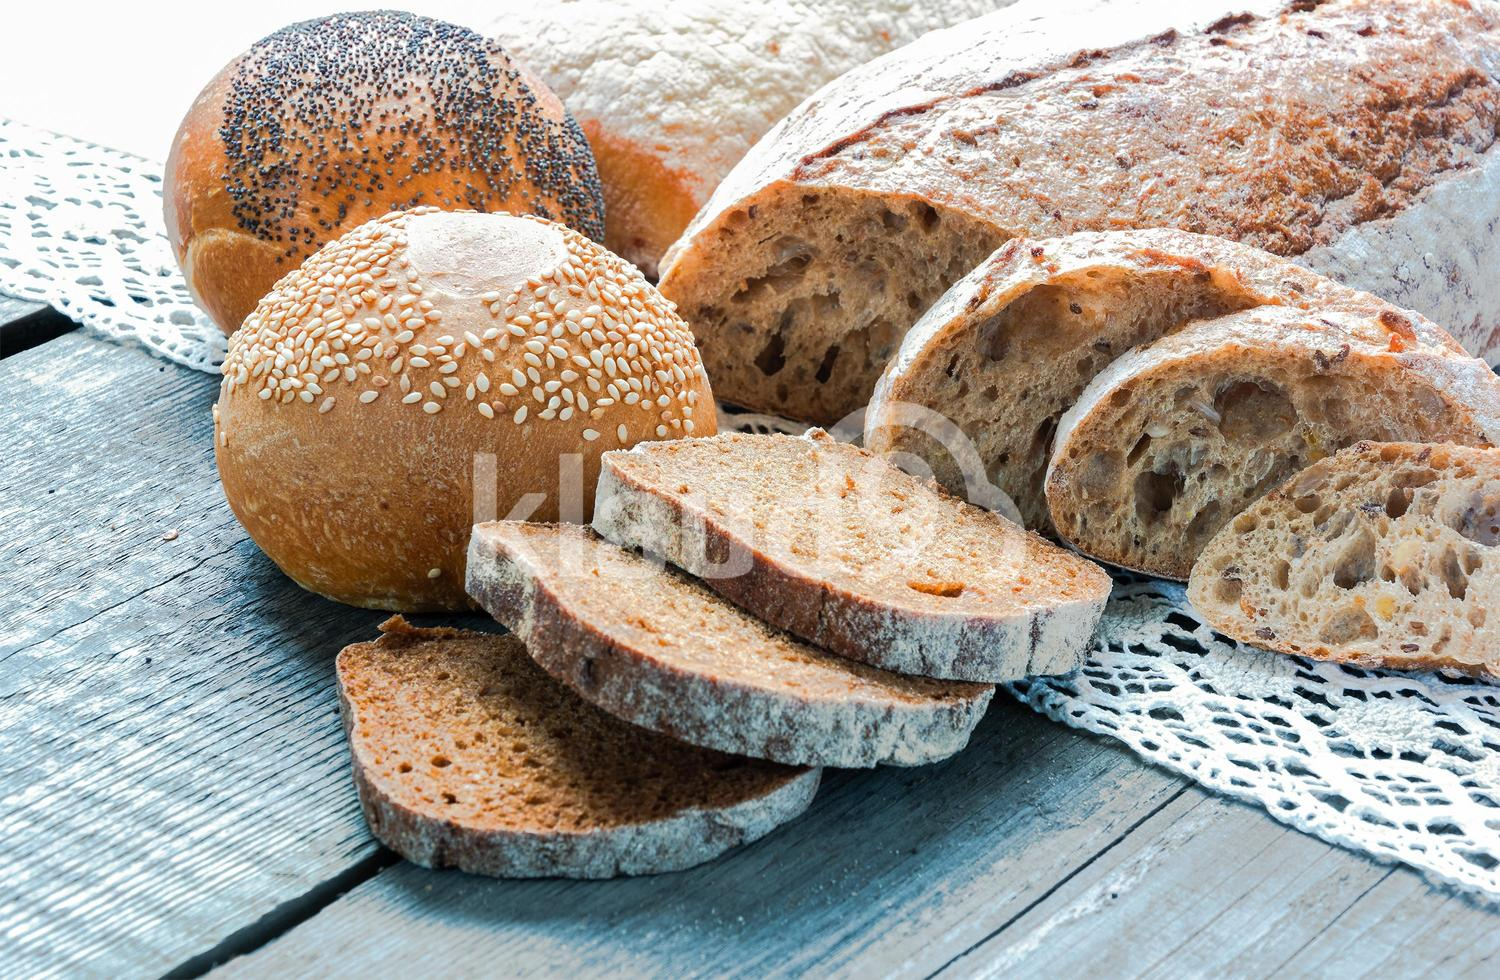 bread and buns lying on a wooden board